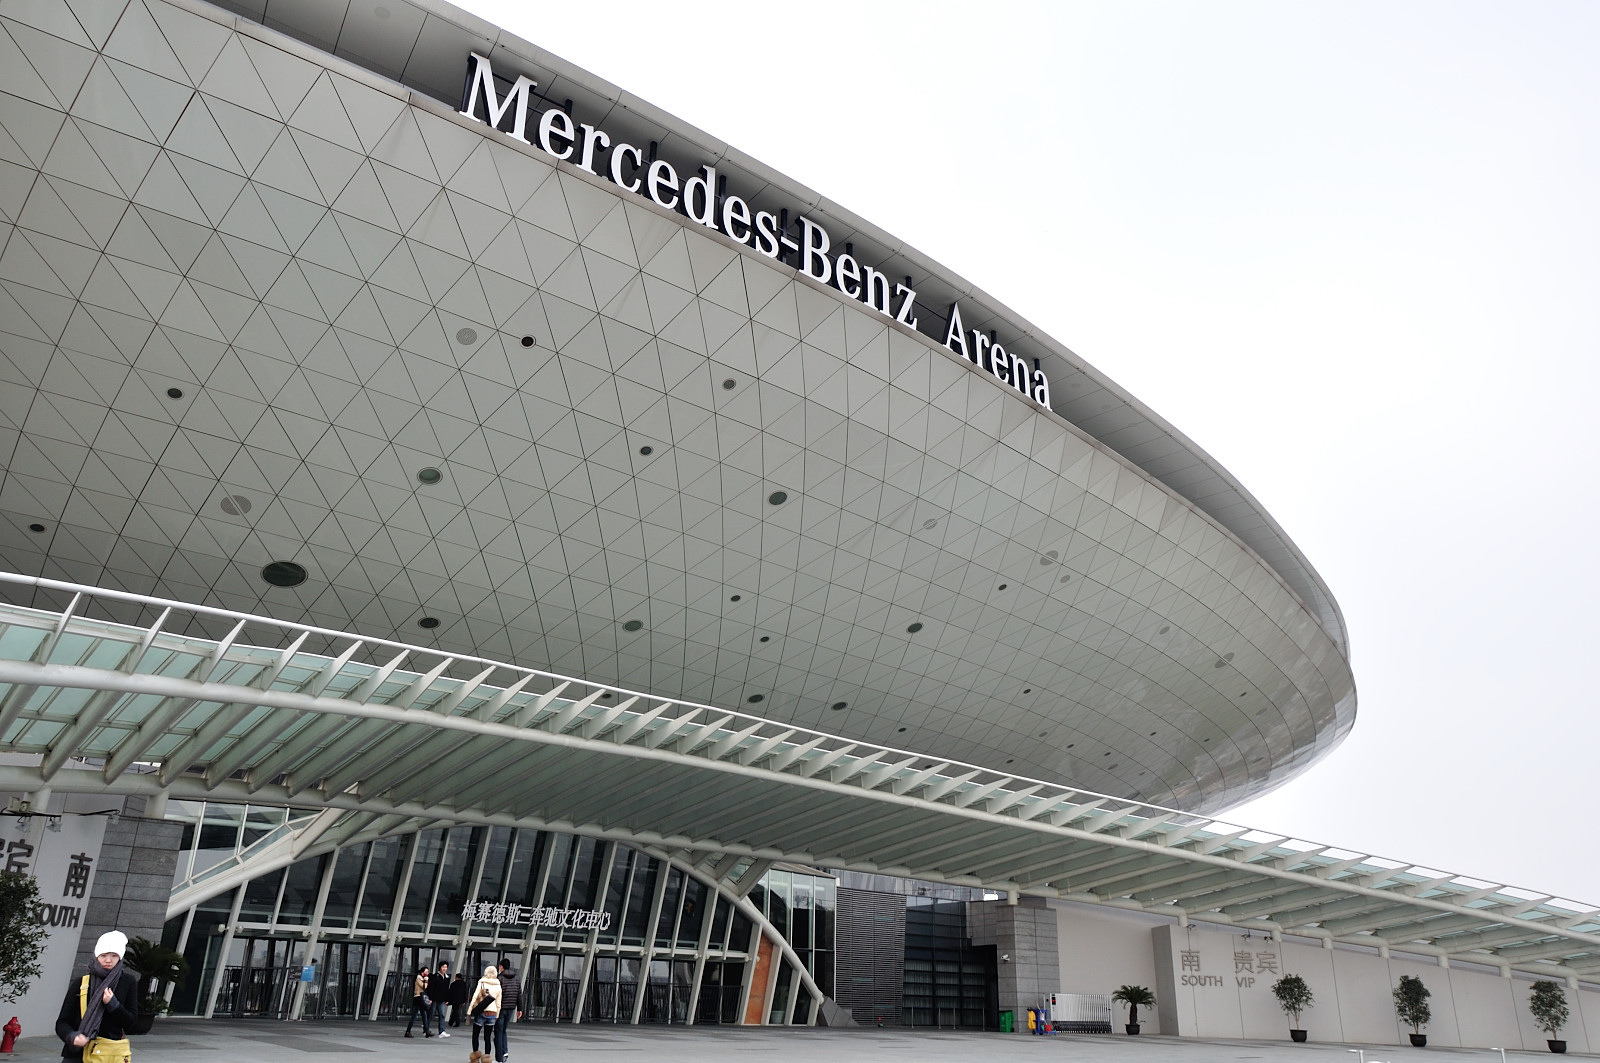 Mercedes benz arena stadium in shanghai thousand wonders for Mercedes benz stadium location